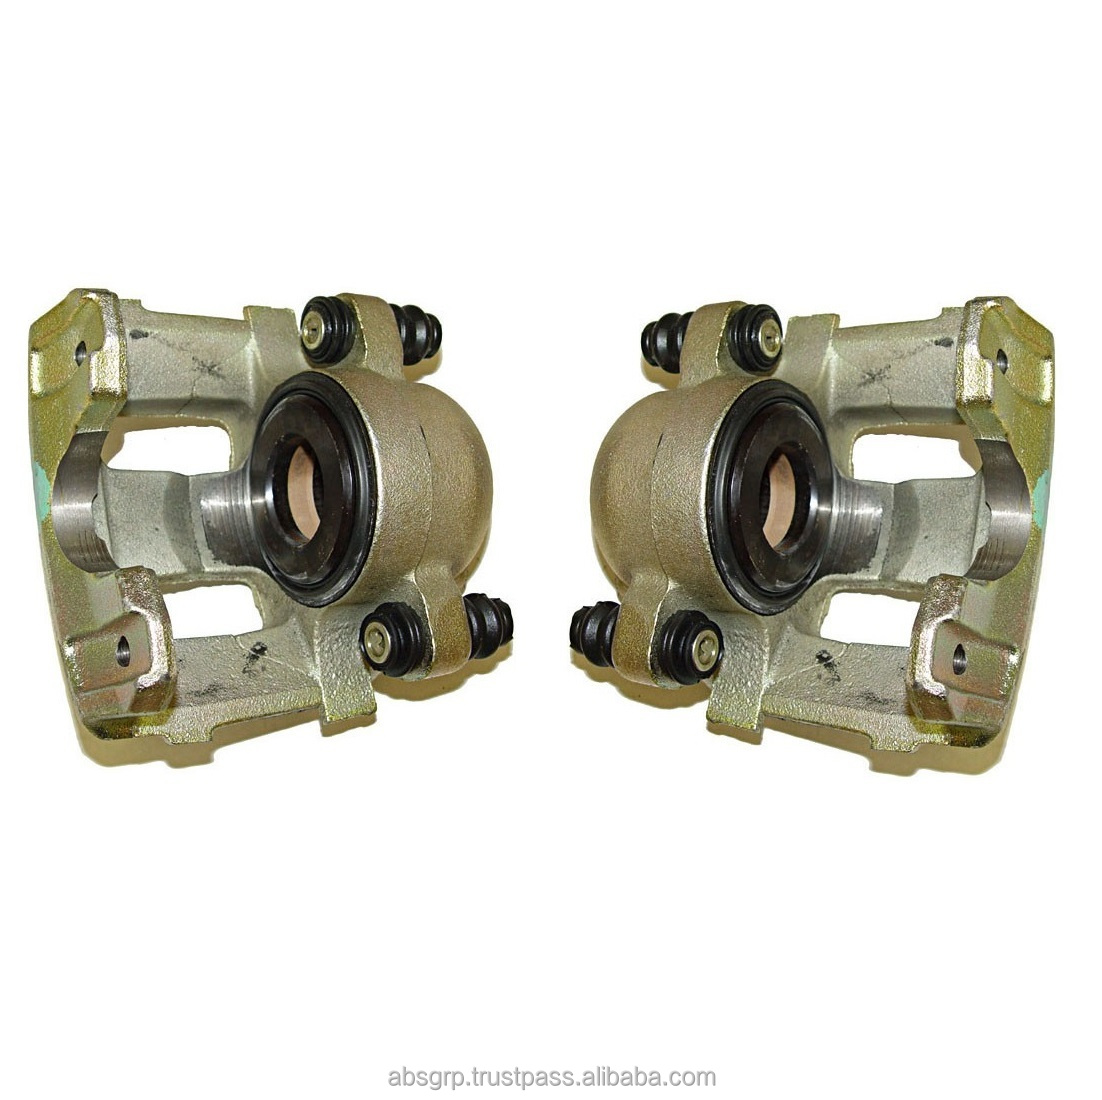 Jeep cherokee xj brake jeep cherokee xj brake suppliers and manufacturers at alibaba com